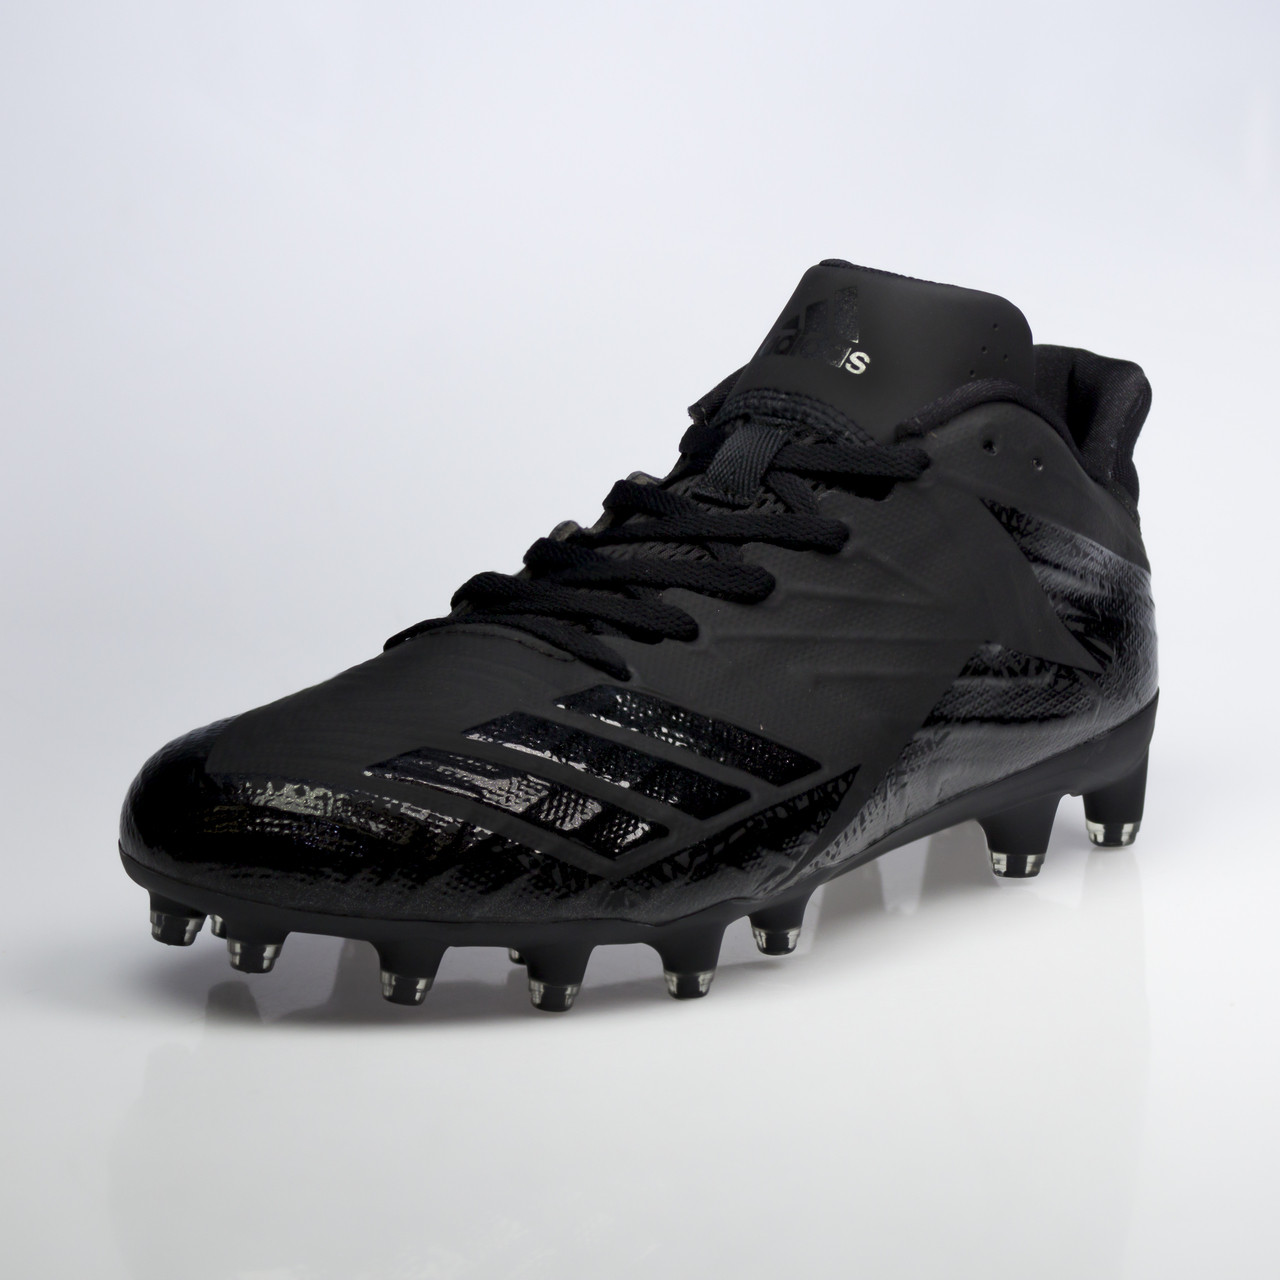 d0e7fe28d ... Adidas Freak X Carbon Low Football   Lacrosse Men s Cleats BY3105 ...